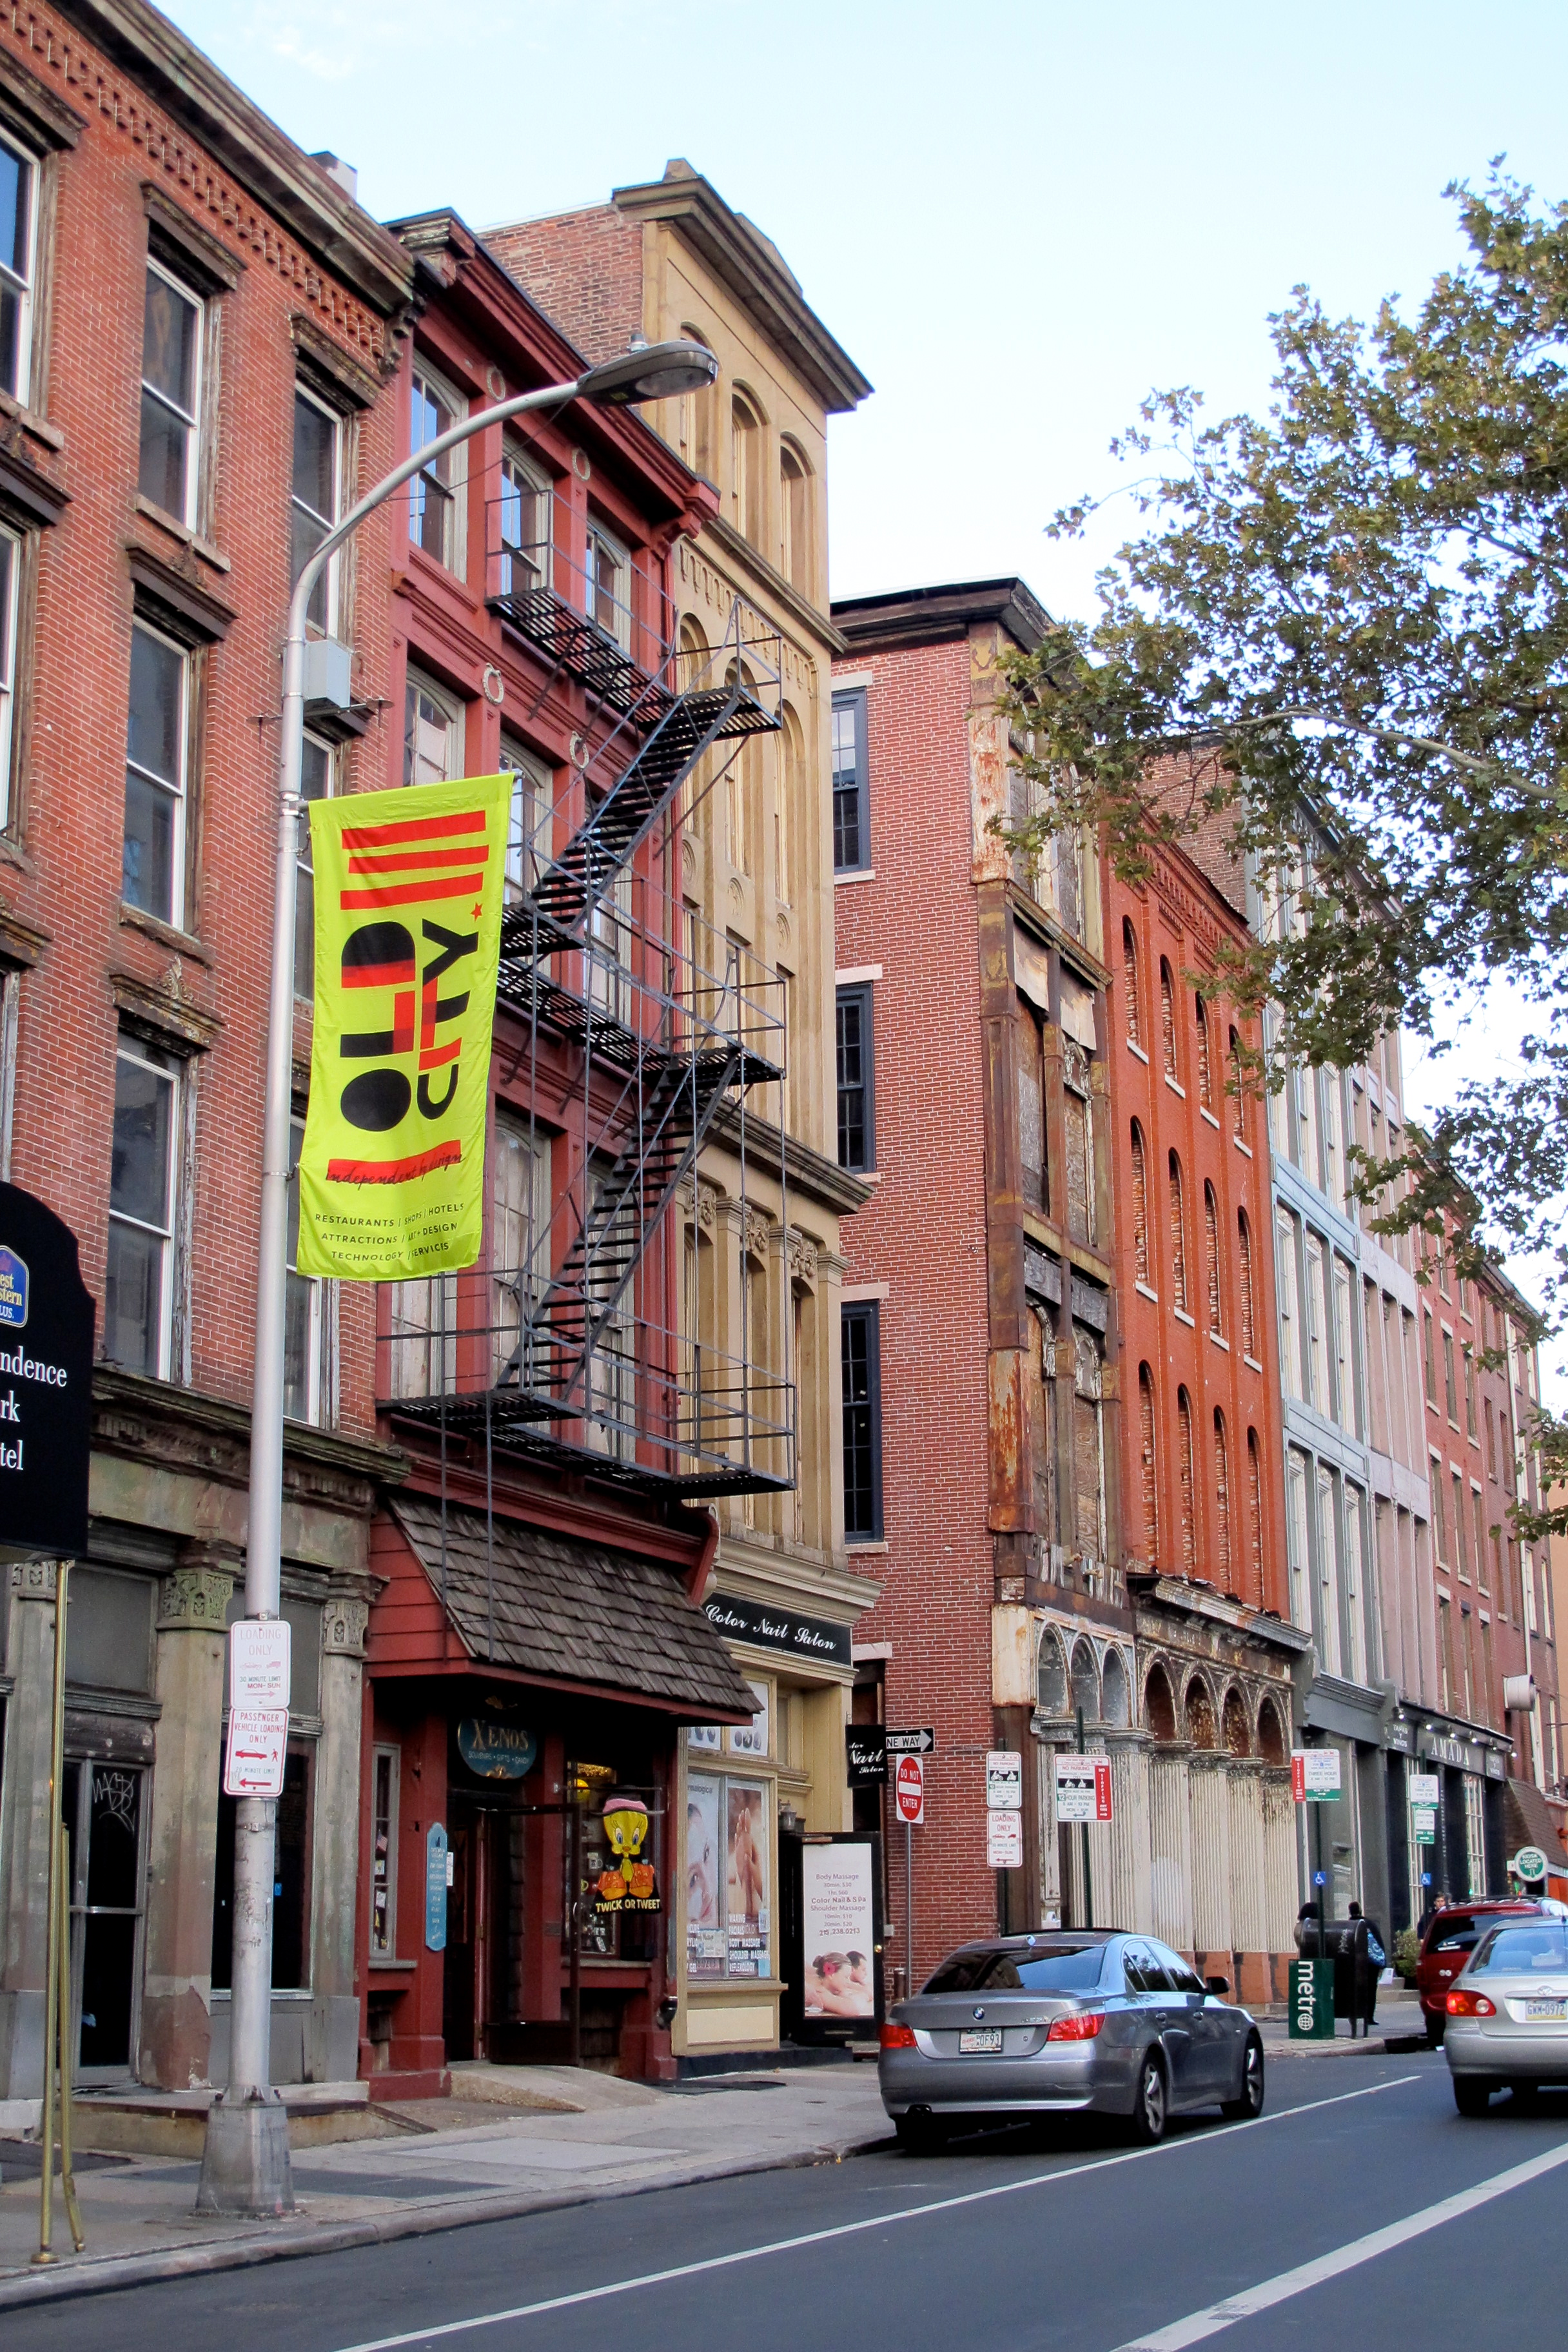 Old City District installed new street lamp banners this week as part of a revamped marketing campaign for the district.